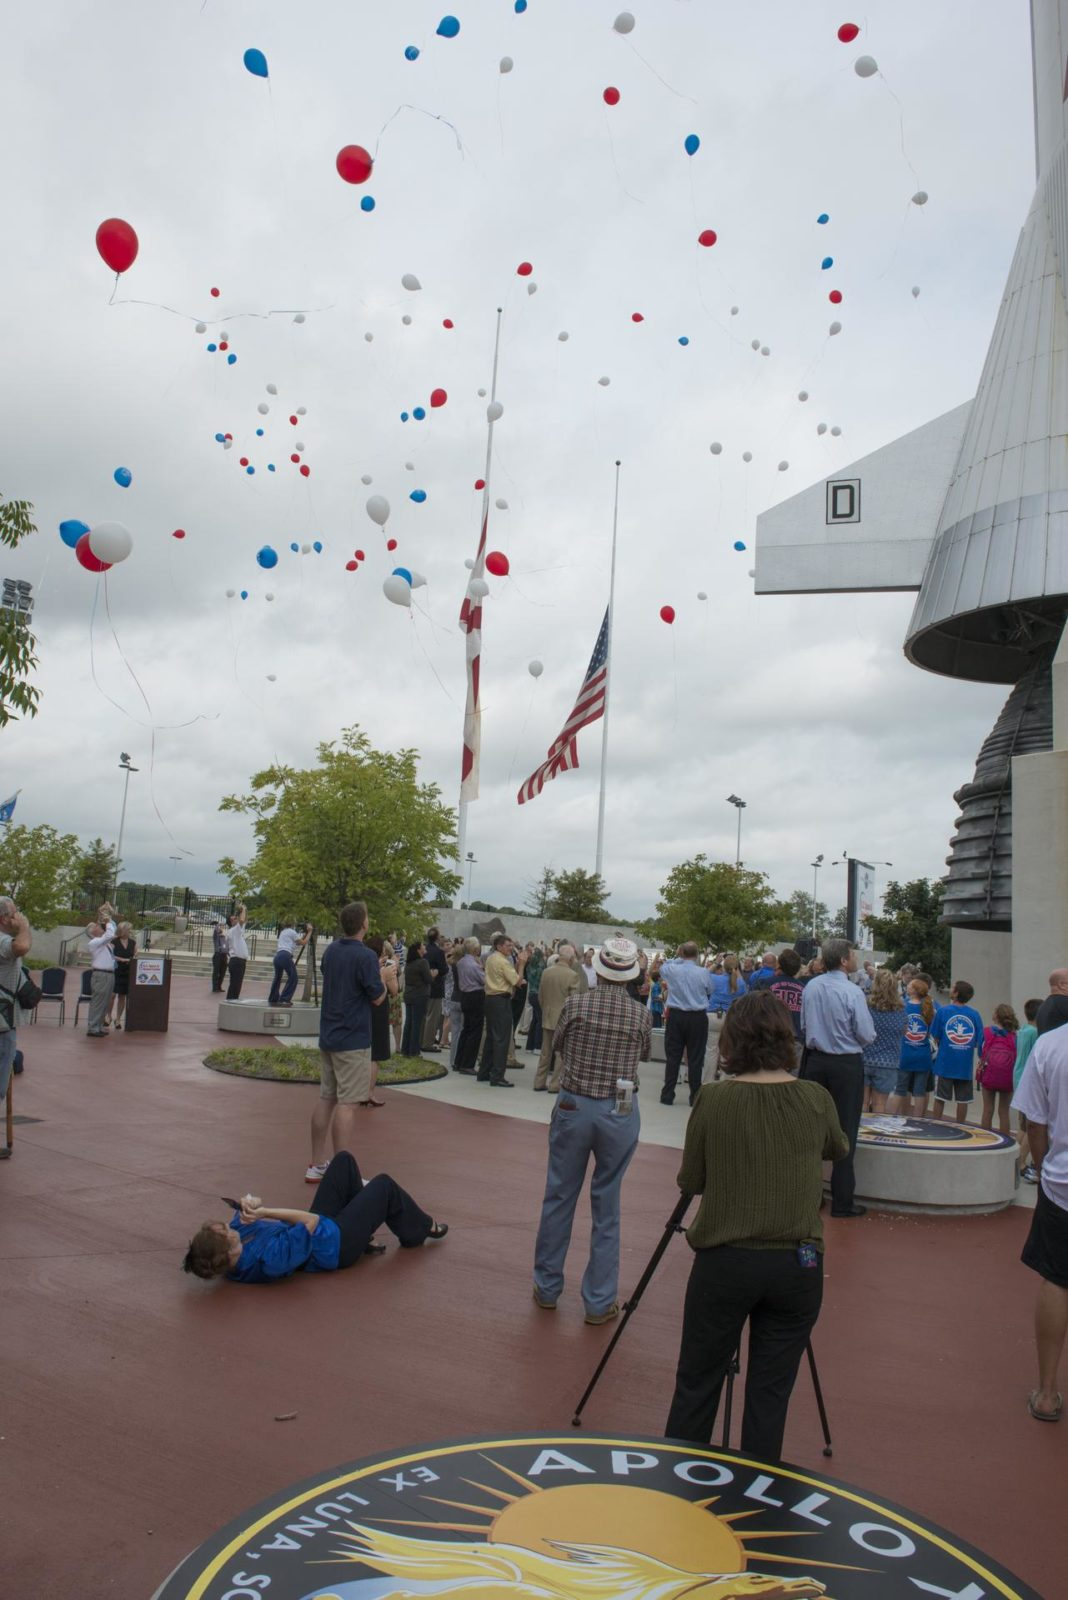 AUGUST 31, 2012 TRIBUTE TO APOLLO ASTRONAUT NEIL ARMSTRONG AT THE USSRC. A LARGE GROUP GATHERED NEAR THE LIFE-SIZE MODEL OF THE SATURN V ROCKET AND RELEASED RED, WHITE AND BLUE BALLOONS TO CELEBRATE THE LIFE OF NEIL ARMSTRONG. IN HONOR OF ARMSTRONG, FLAGS FLEW AT HALF-MAST ACROSS AMERICA ON AUGUST 31.1200934 1200934